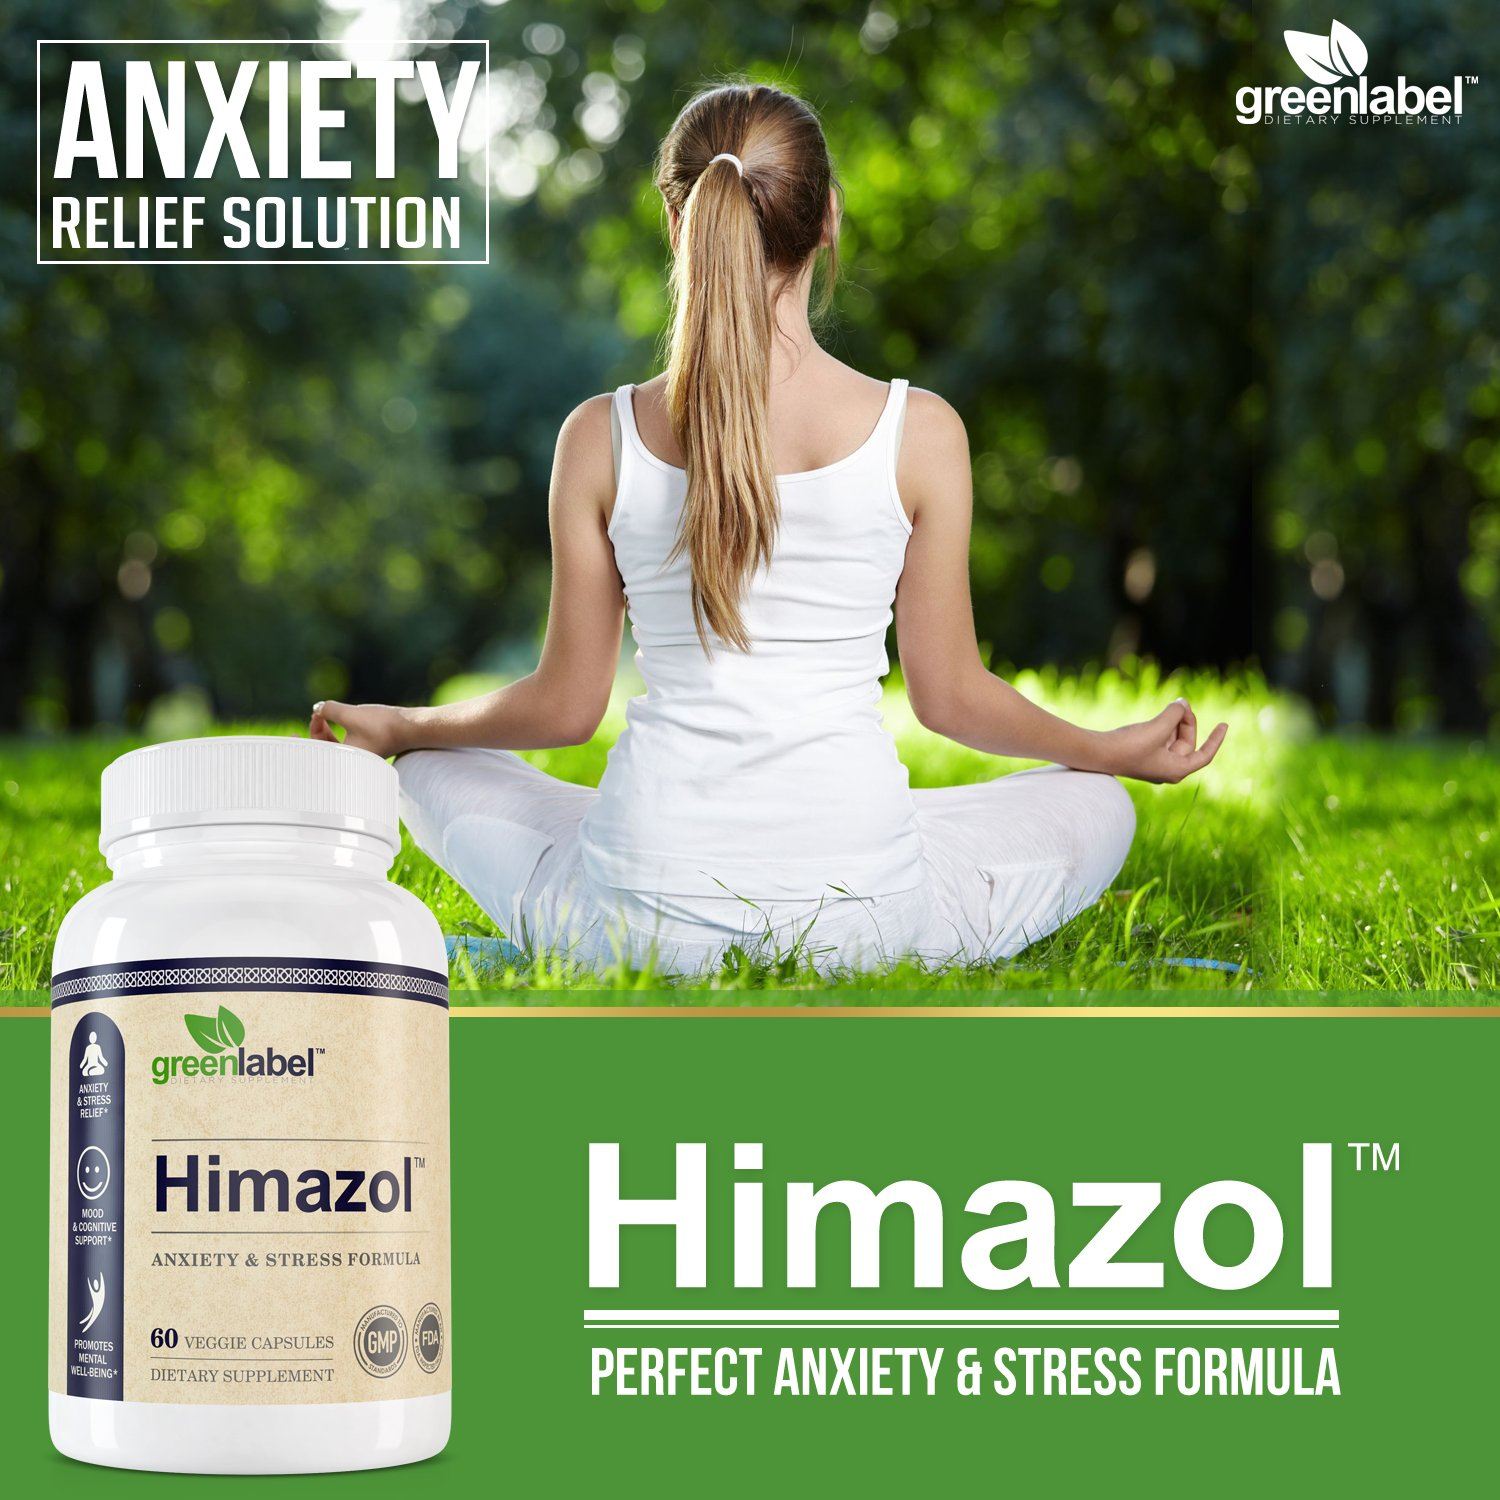 Himazol, Anxiety Relief And Stress Supplement. 60 Capsules. by GREEN LABEL DIETARY SUPPLEMENT (Image #2)